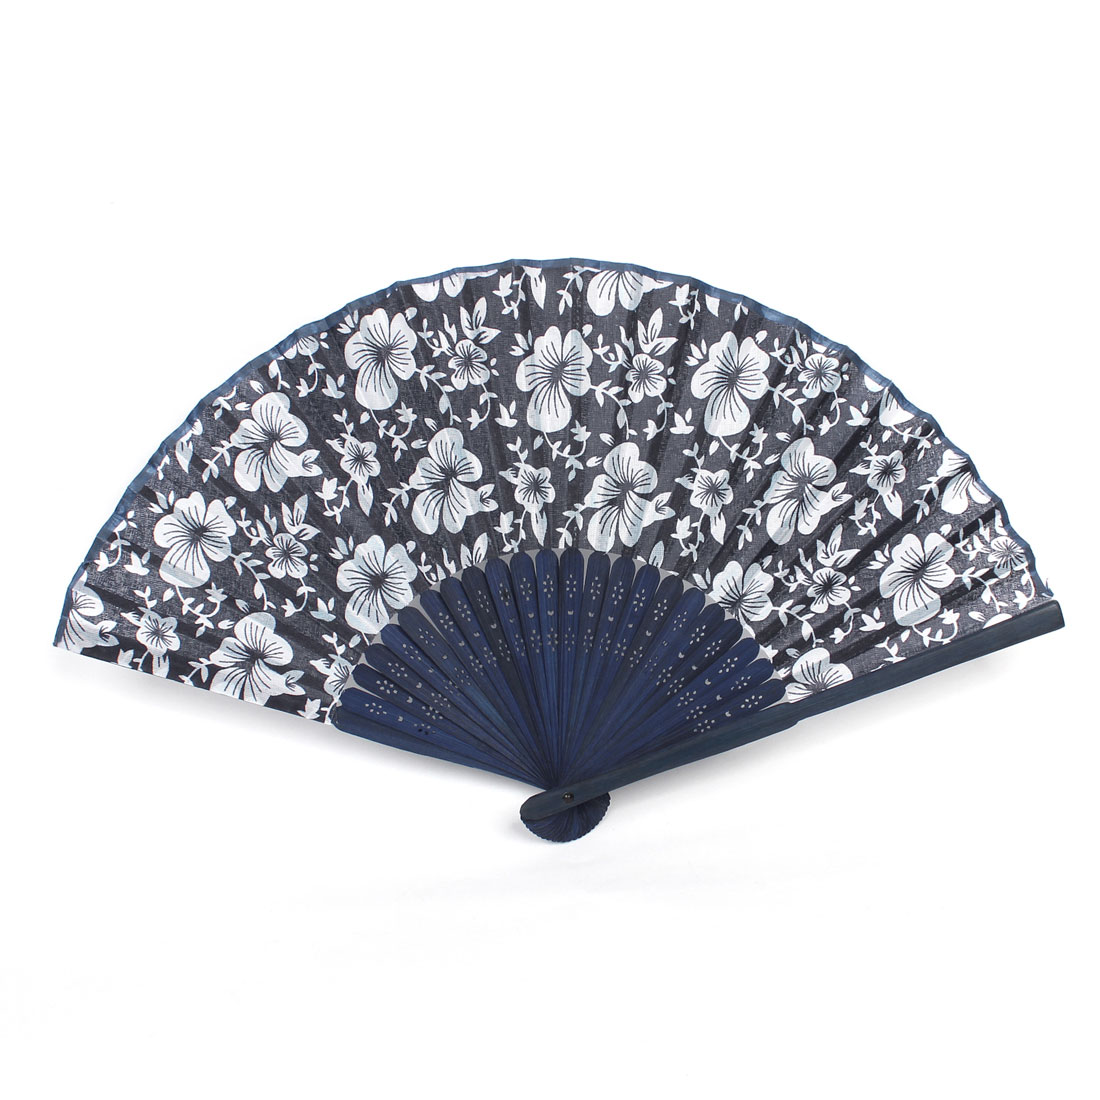 Morning Glory Print Bamboo Fabric Folding Hand Fan White Navy Blue for Ladies